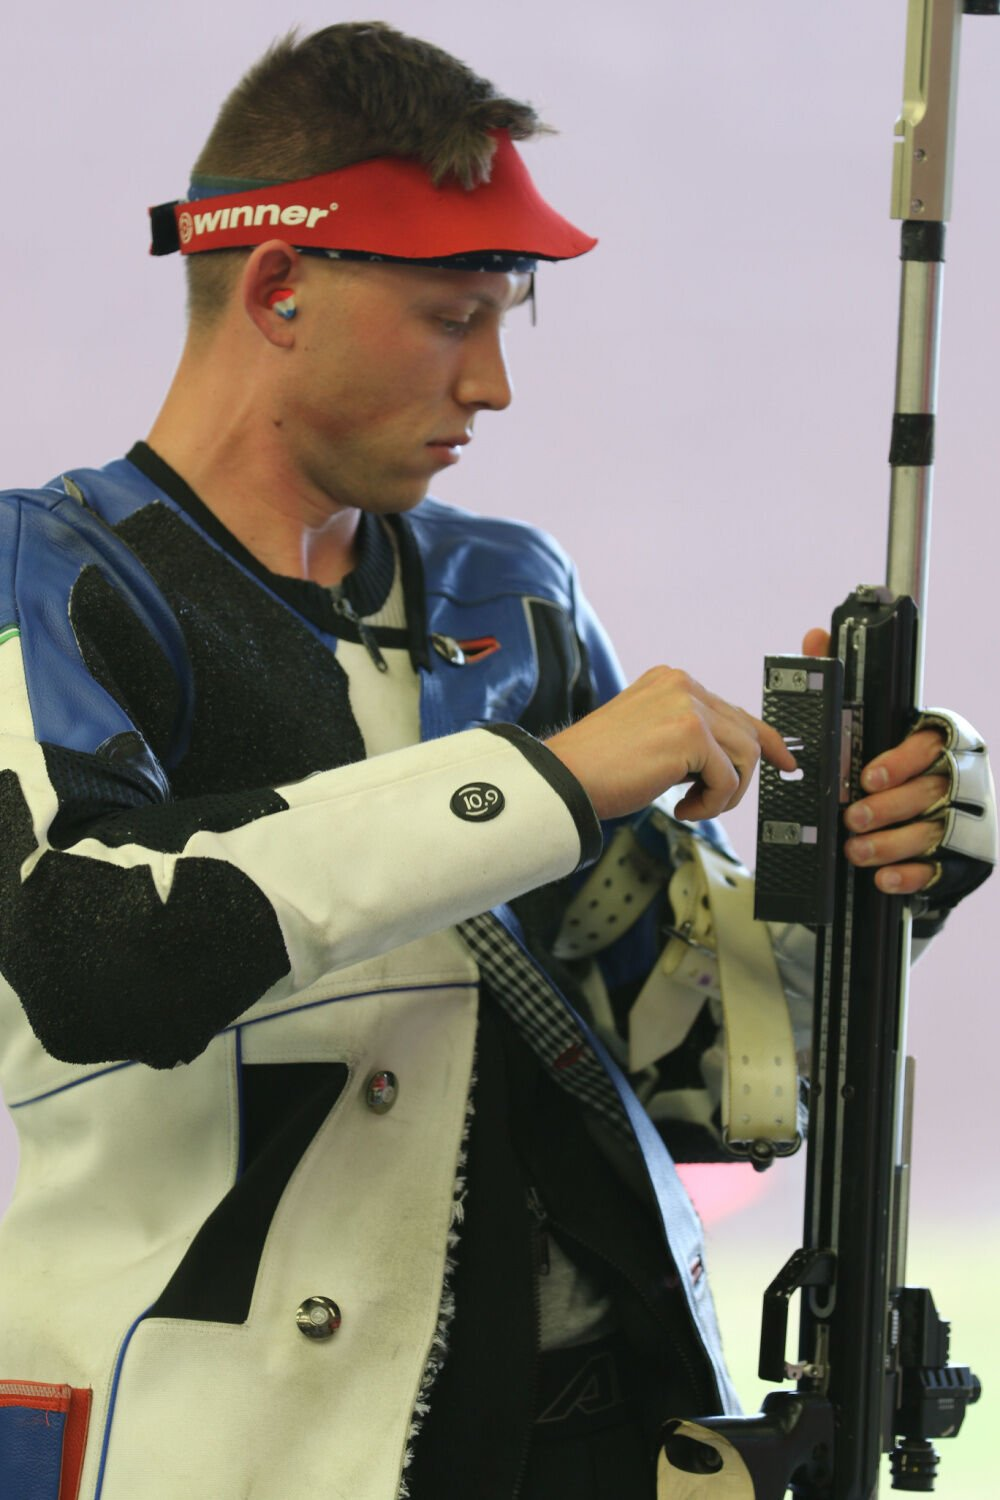 US Army Sergeant Patrick Sunderman examines his rifle during Olympic Trials in Fort Benning, Georgia, on May 26, 2021.